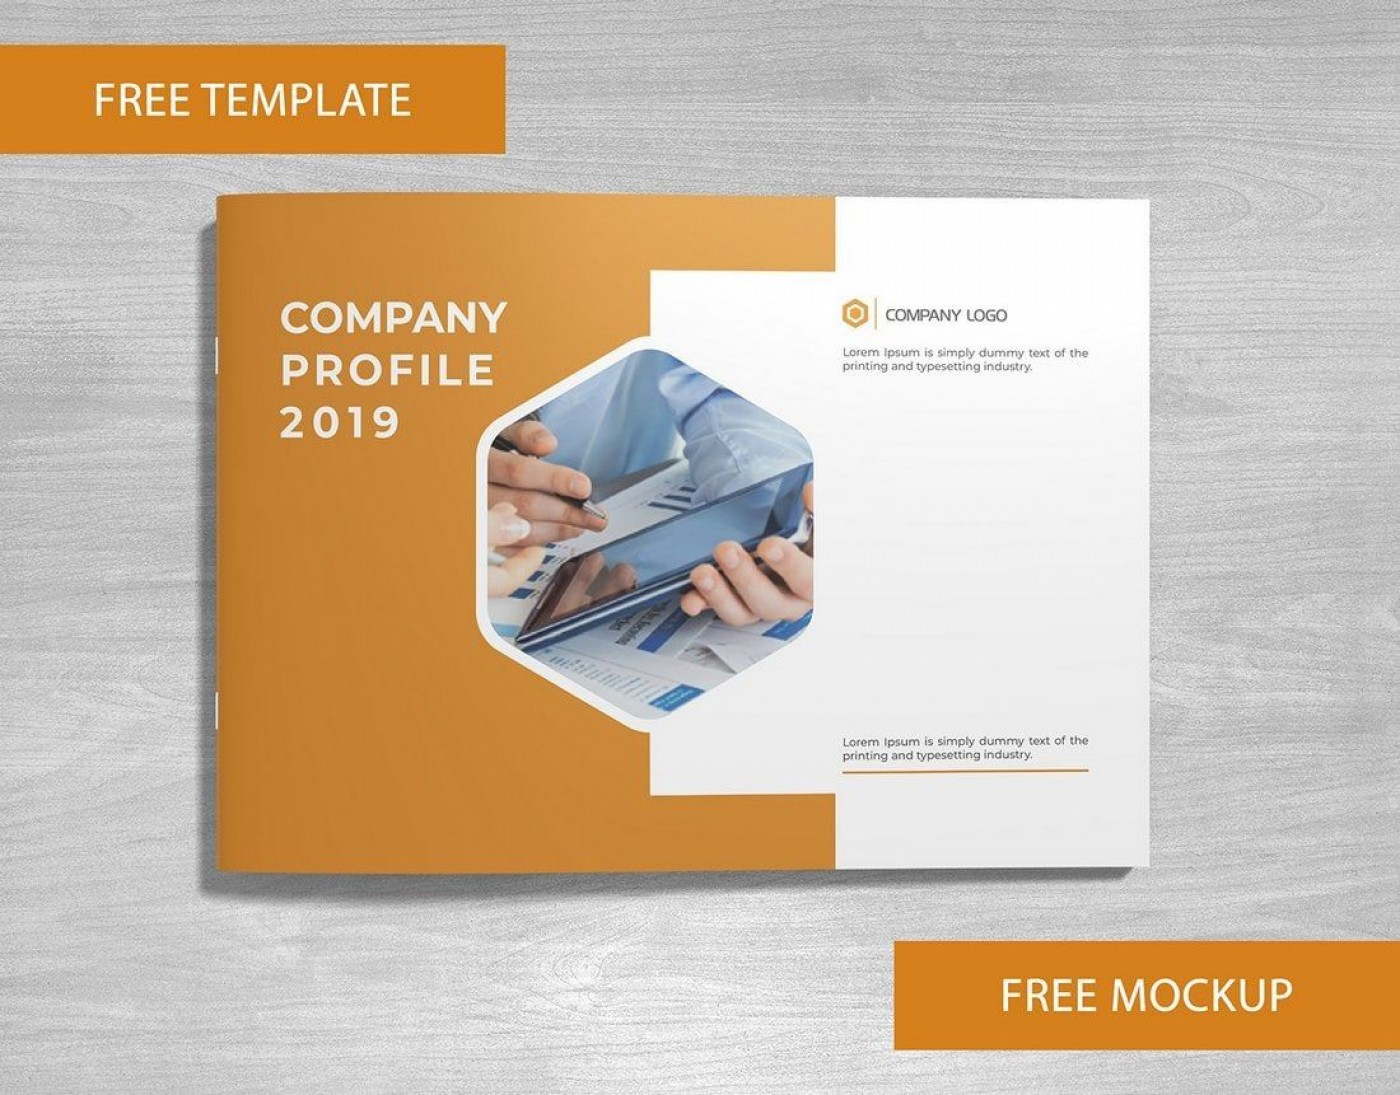 005 Shocking Busines Brochure Design Template Free Download Idea 1400